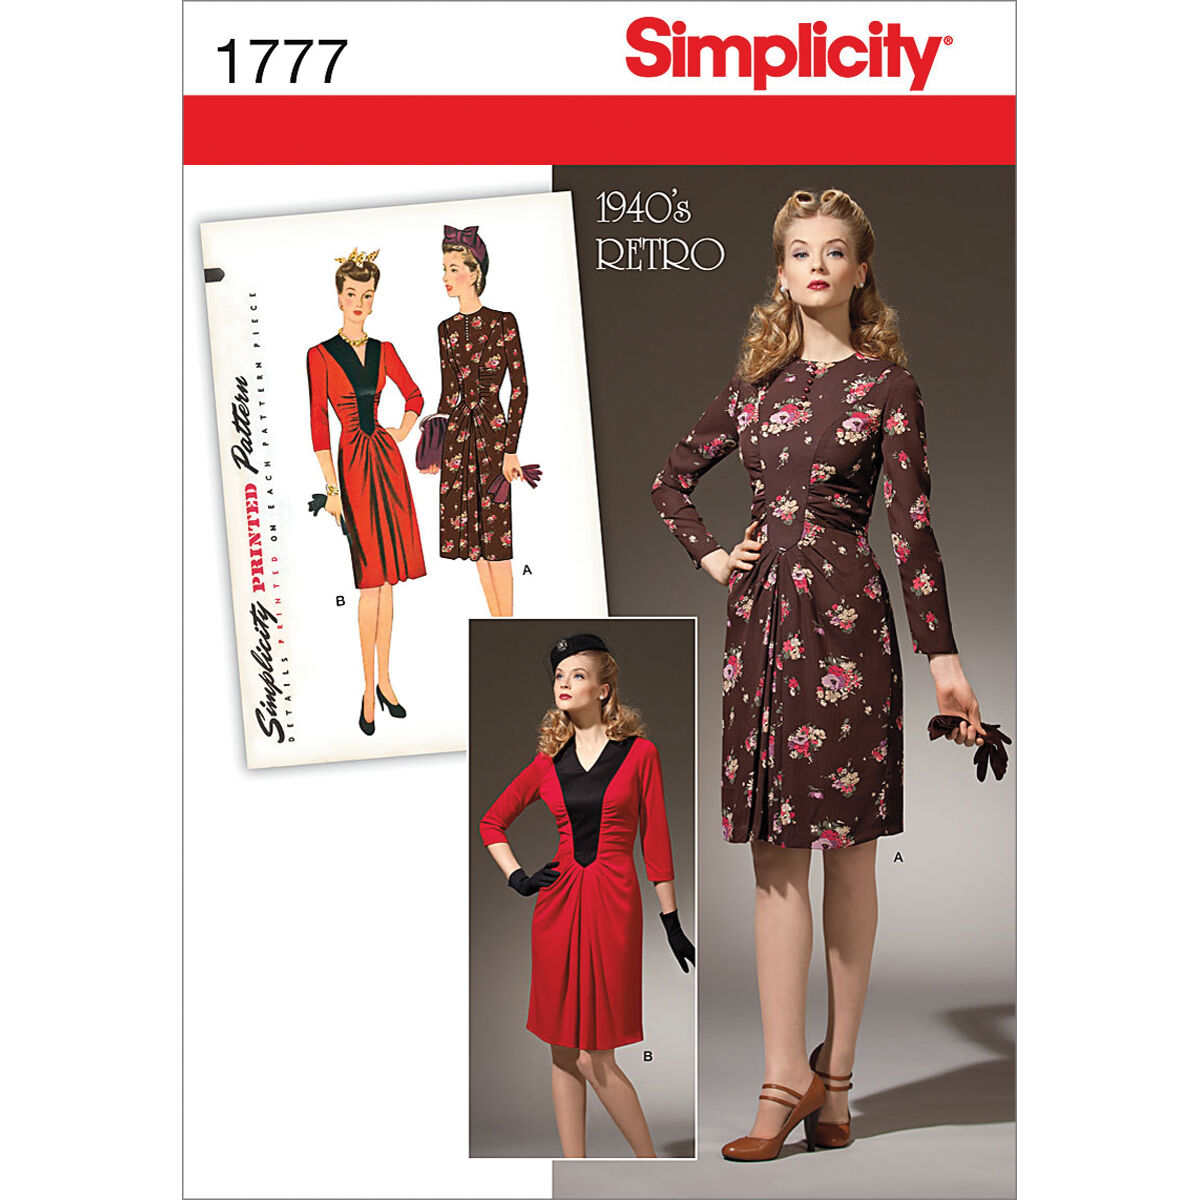 1940s Sewing Patterns – Dresses, Overalls, Lingerie etc Simplicity Pattern 1777H5 6 - 8 - 10 - 12 - - Simplicity Pattern $16.95 AT vintagedancer.com